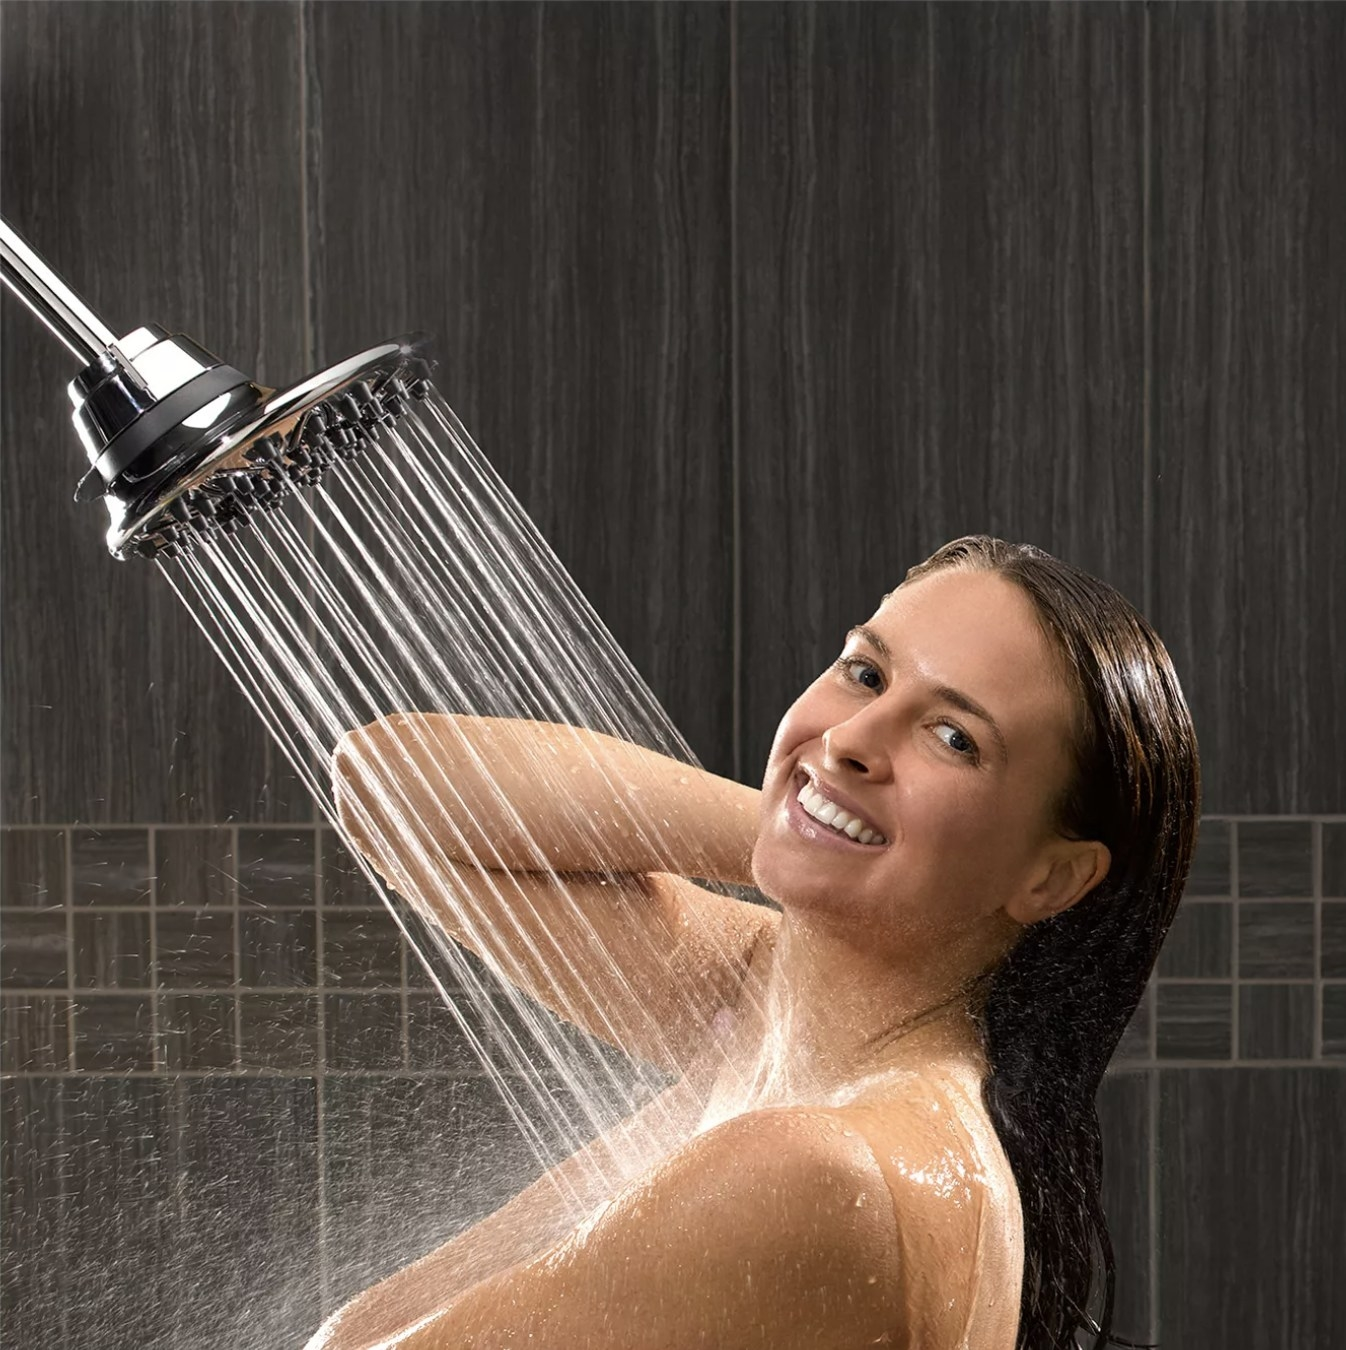 A model smiling under a showerhead spraying water